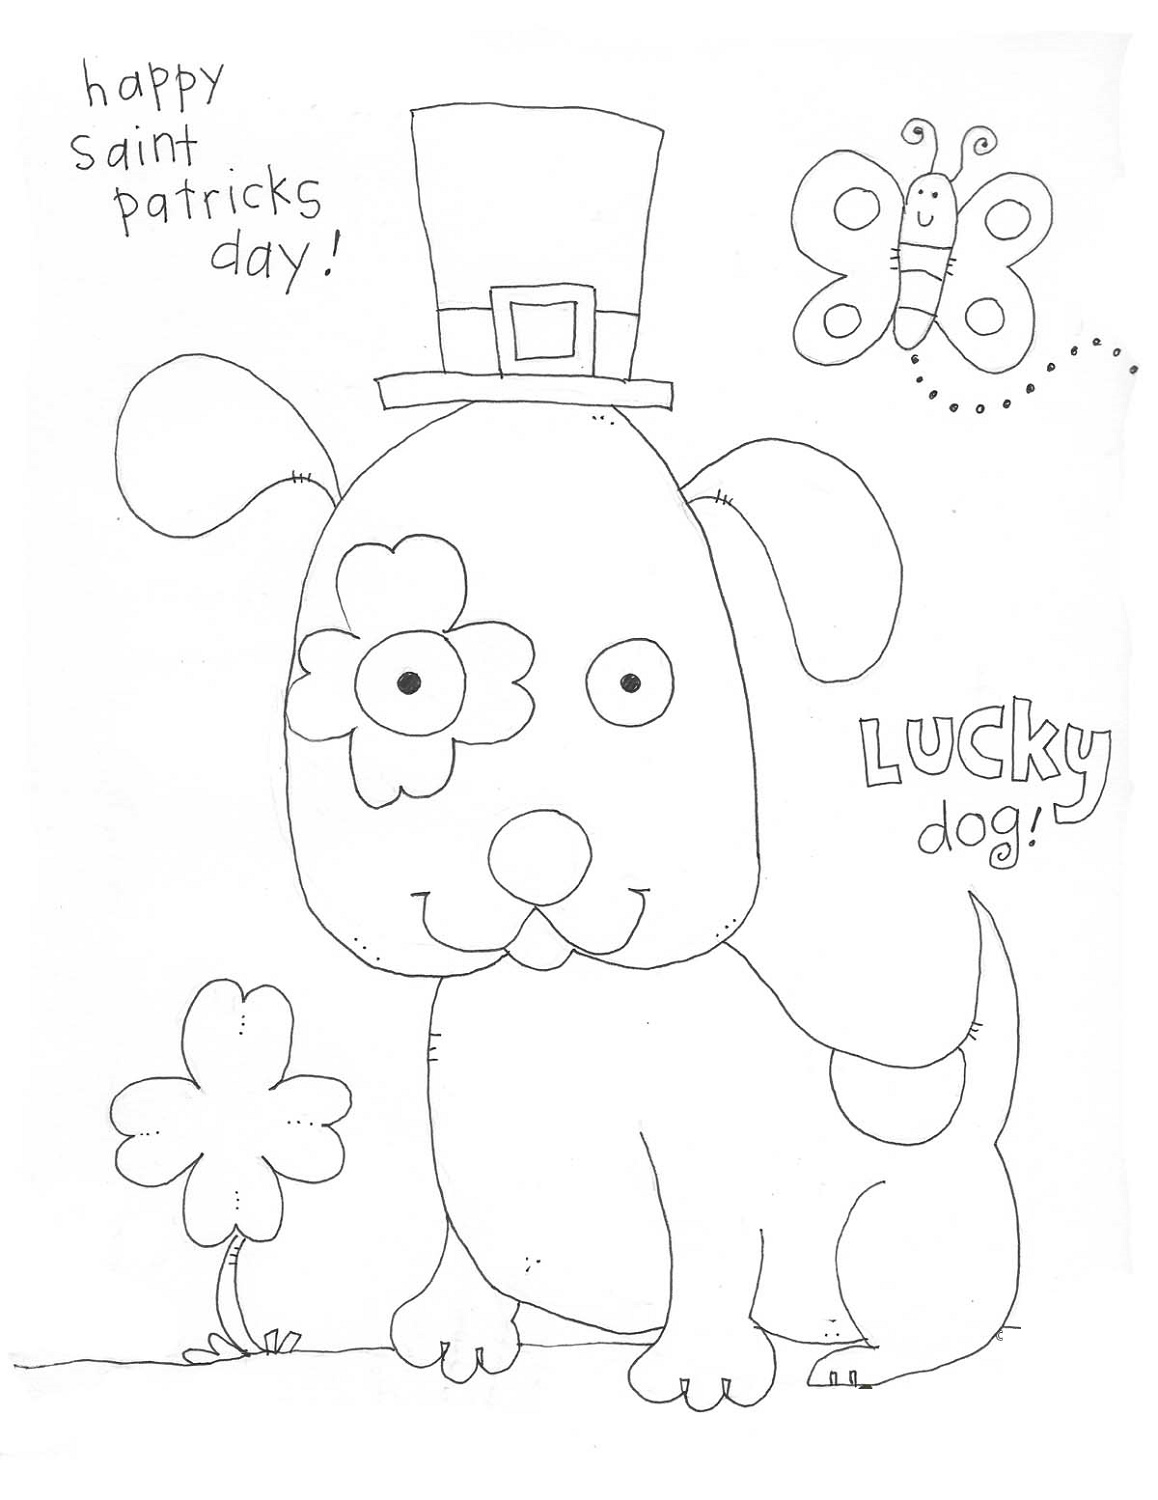 St Patrick's Day Coloring Sheets For Preschoolers